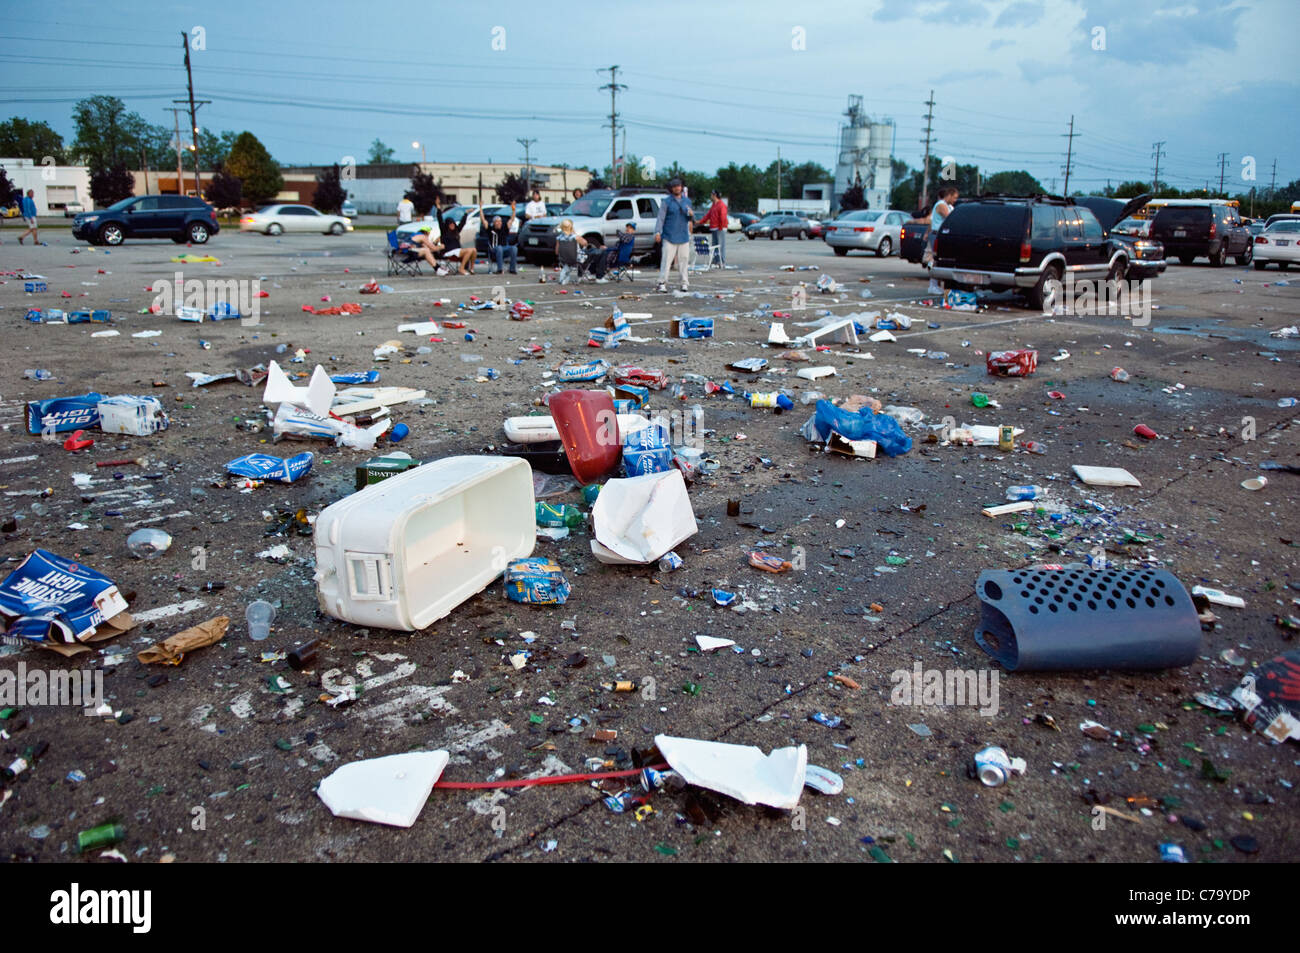 Trash Left in Parking Lot near Churchill Downs after the 2011 Kentucky Derby in Louisville, Kentucky - Stock Image